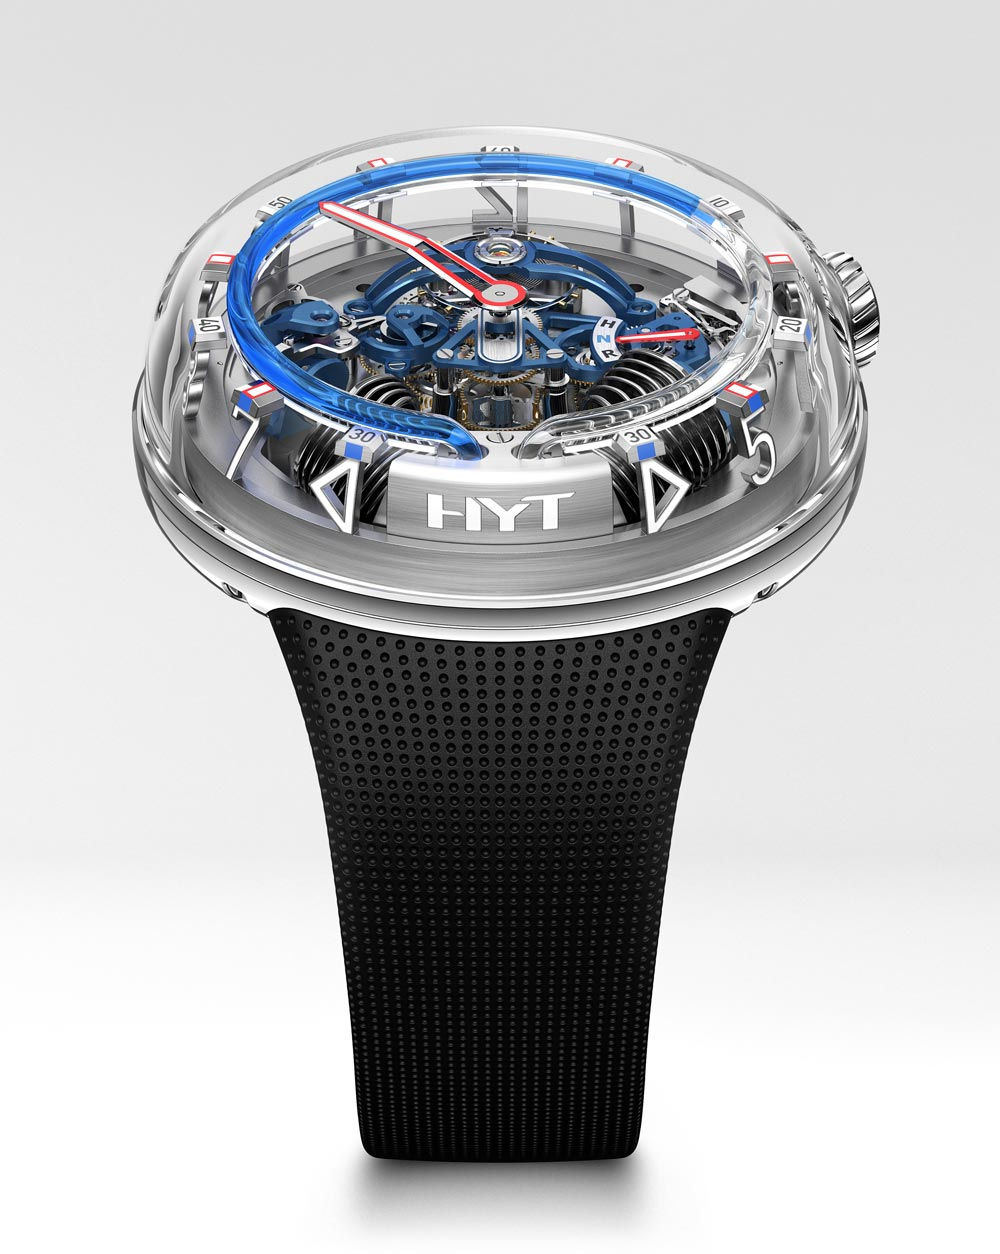 Reloj H20 de HYT ( The Hydro Mechanical Horologistic en color azul